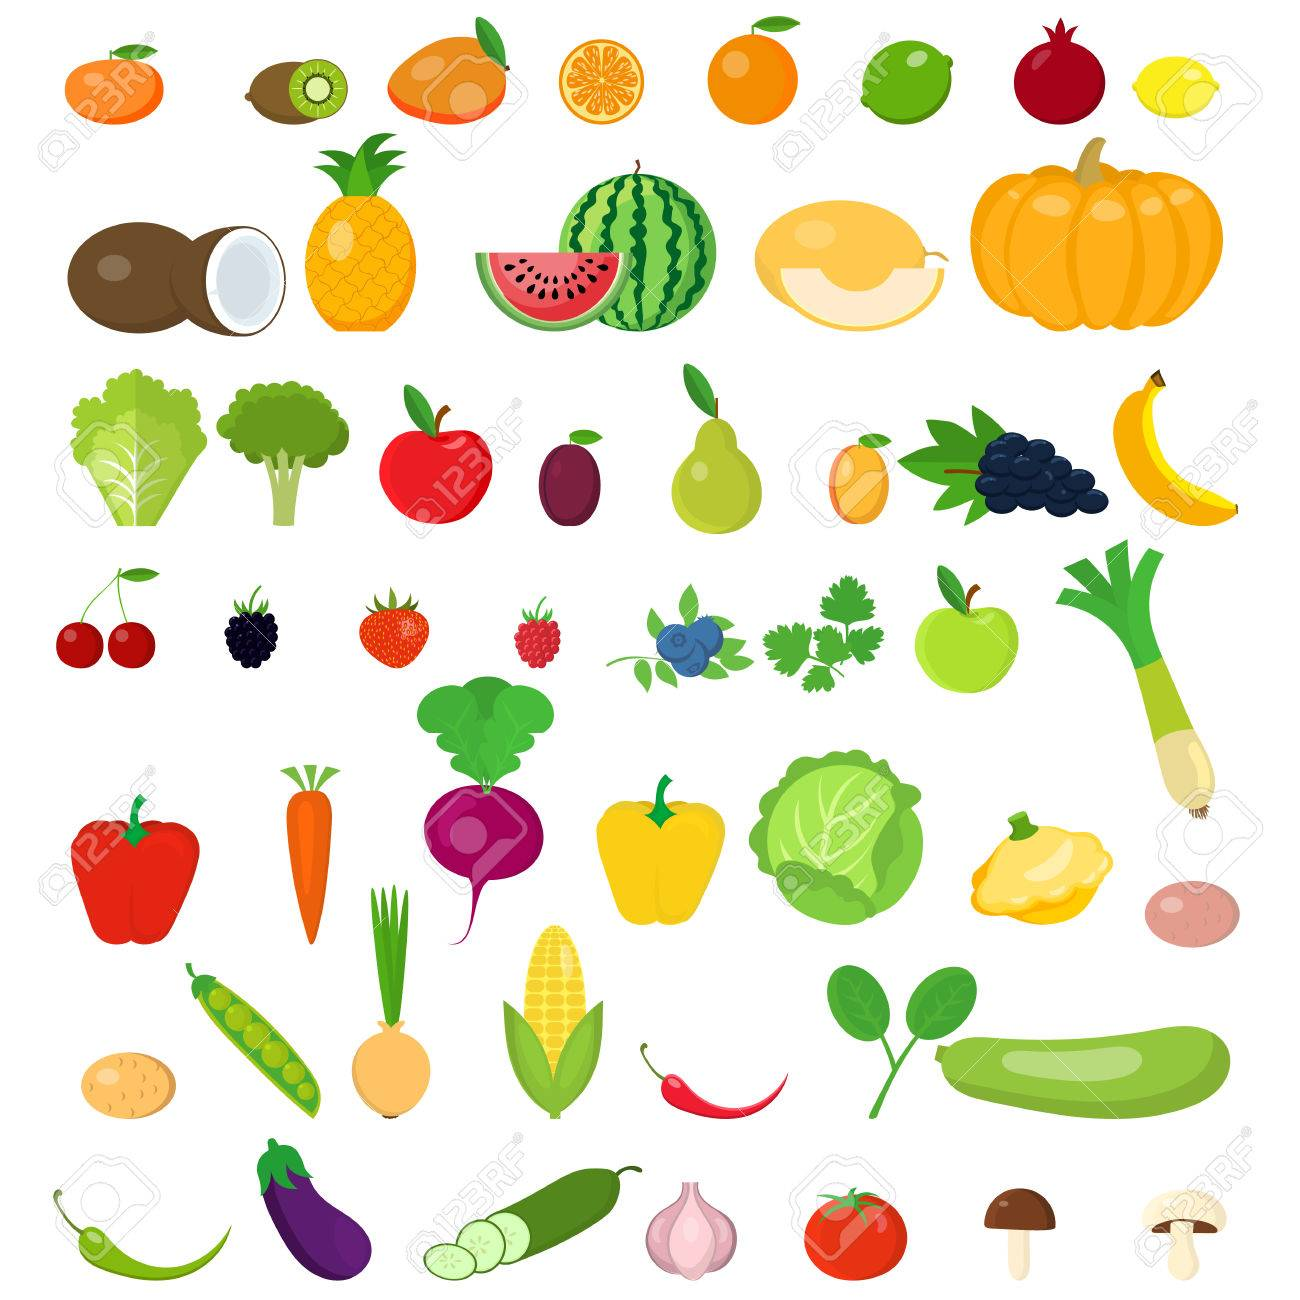 A set of fruits and vegetables. - 81073647